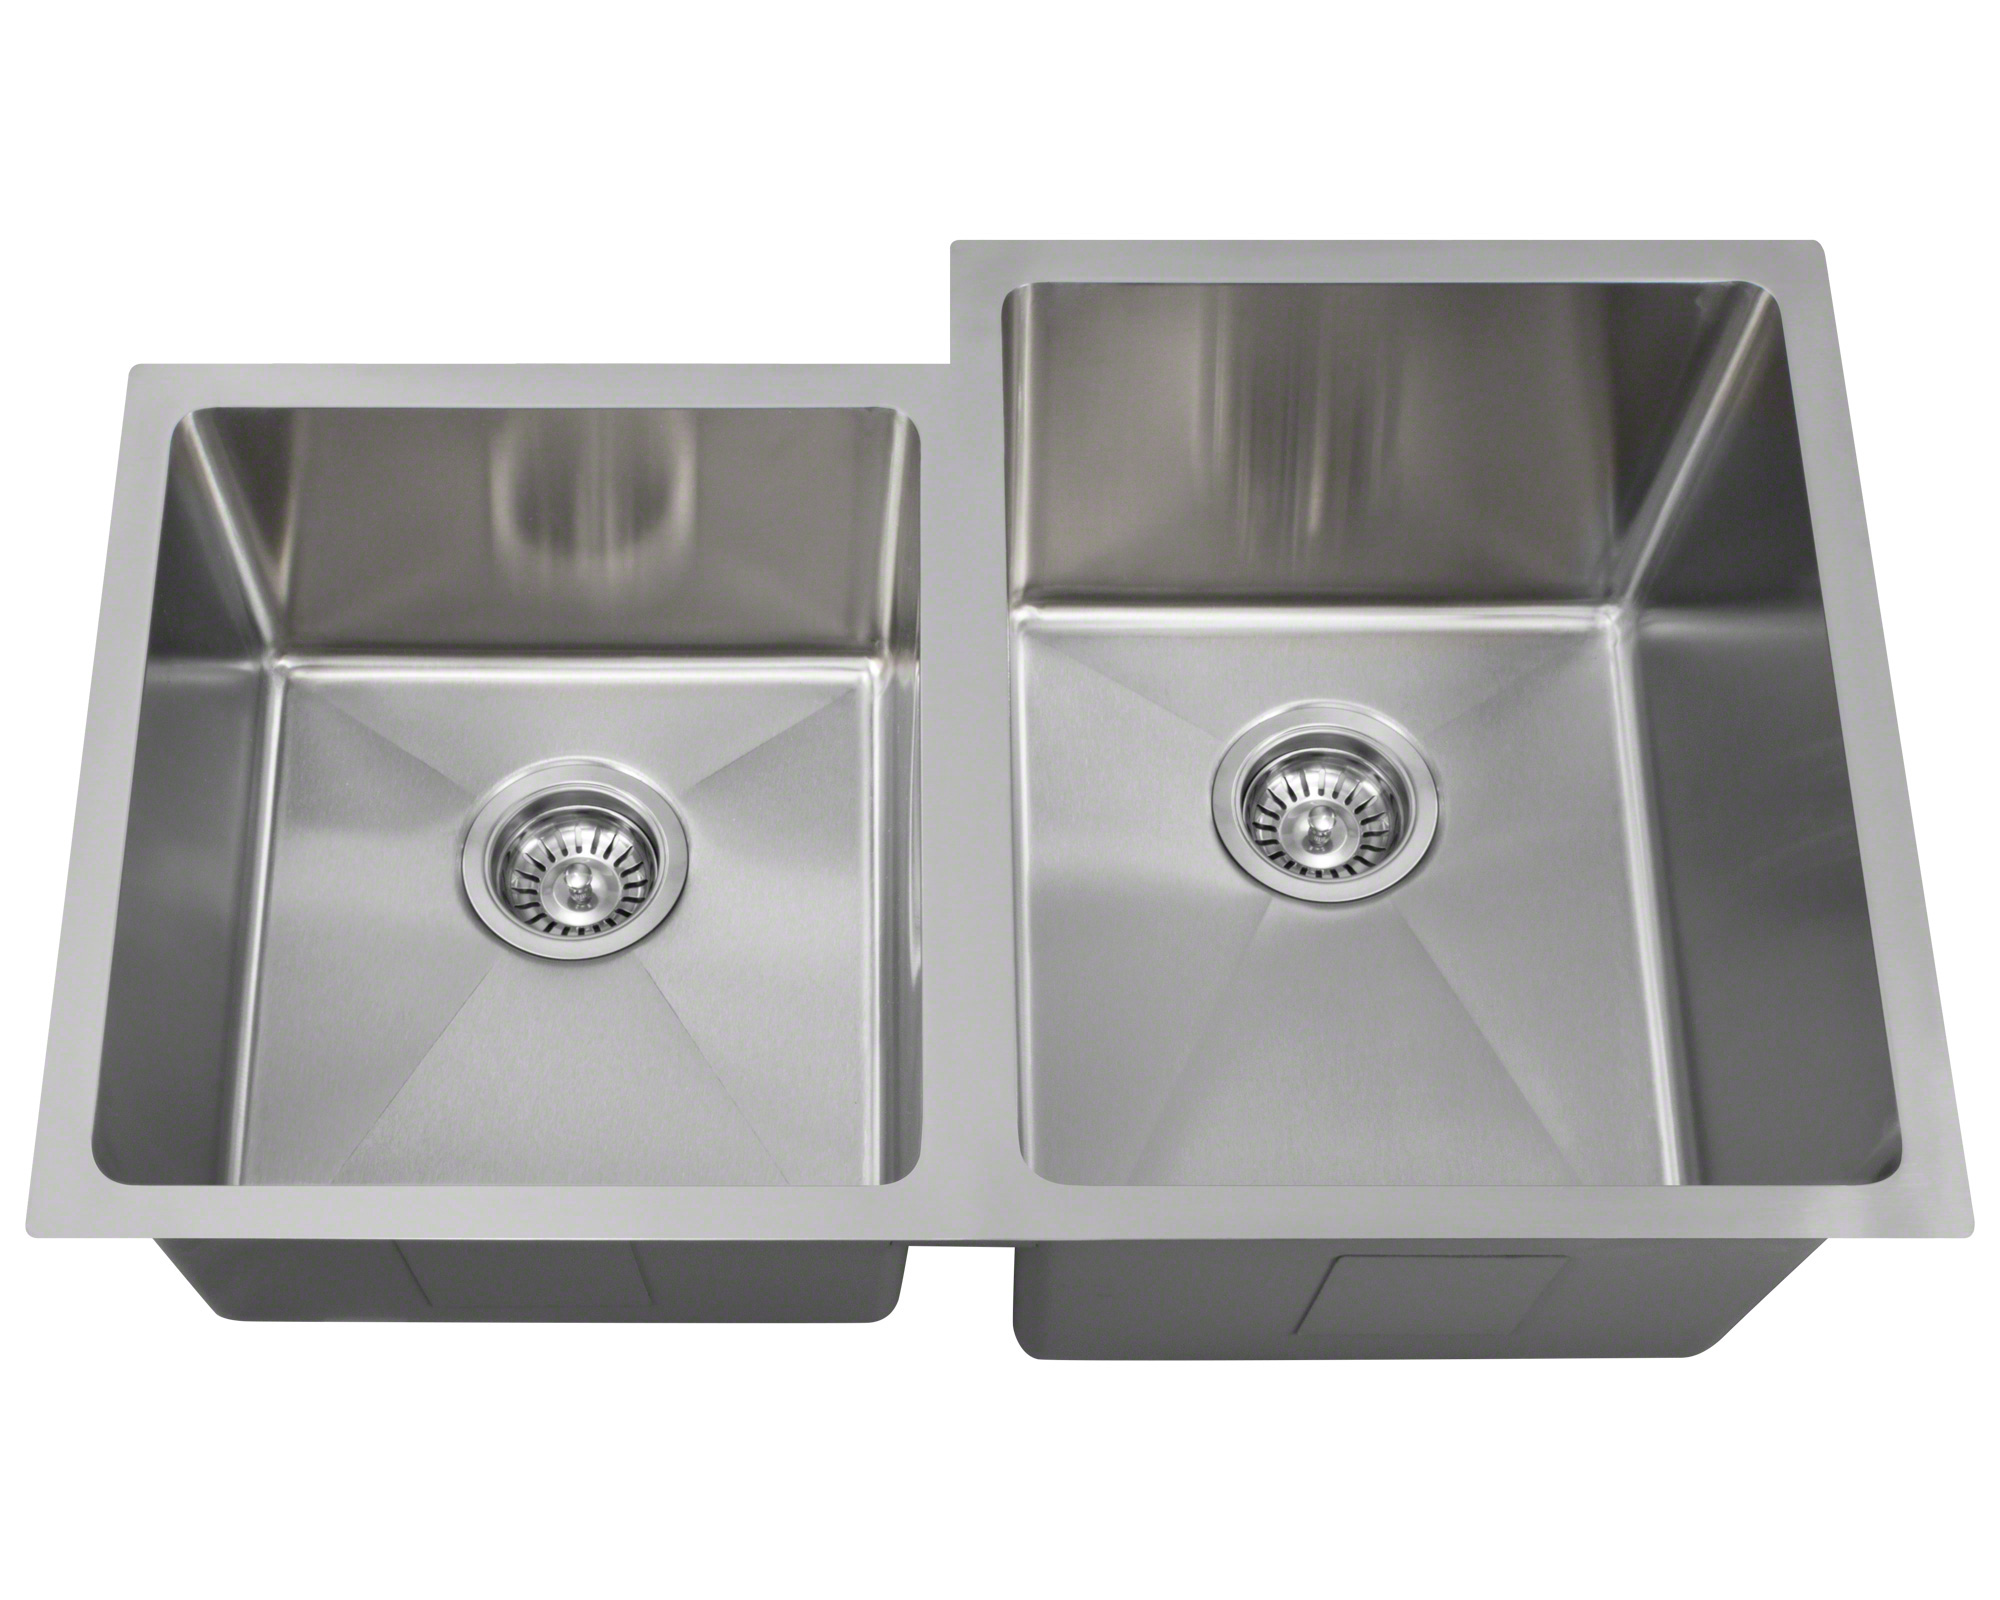 "Polaris PR0213 Undermount Offset Double Bowl 3/4"" Radius Stainless Steel Kitchen Sink"